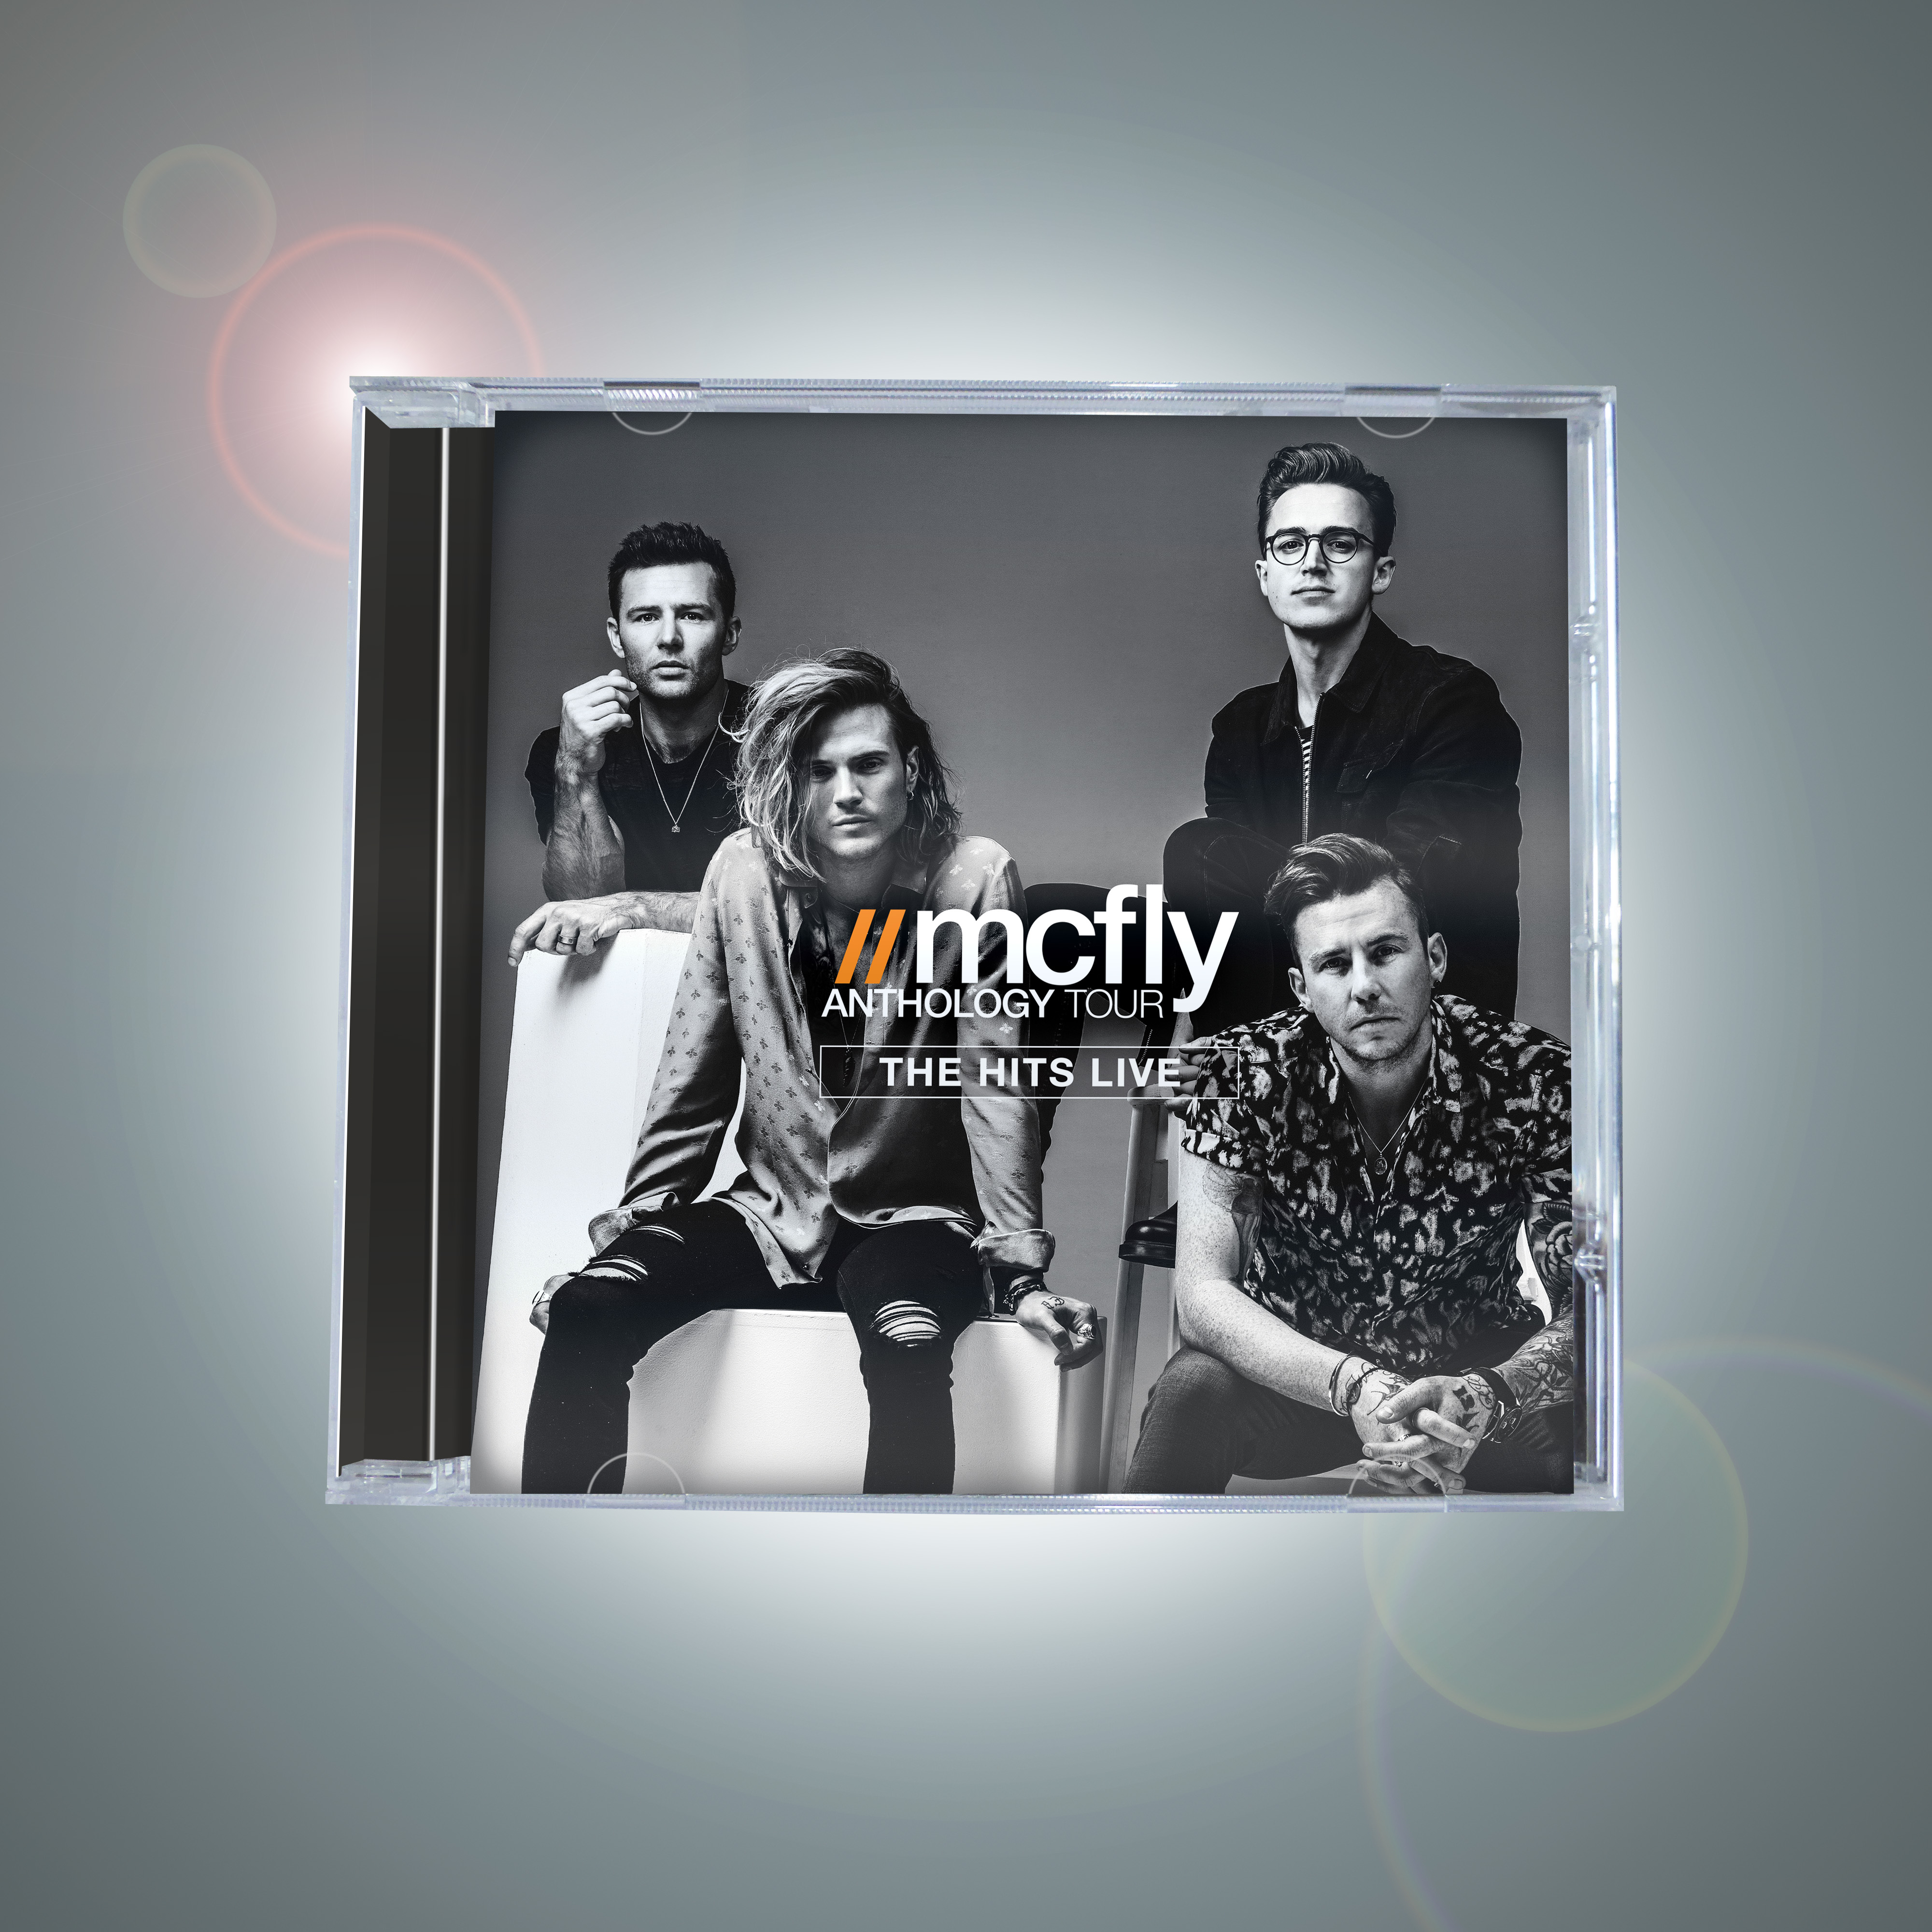 Anthology Tour (The Hits Live) CD - McFly